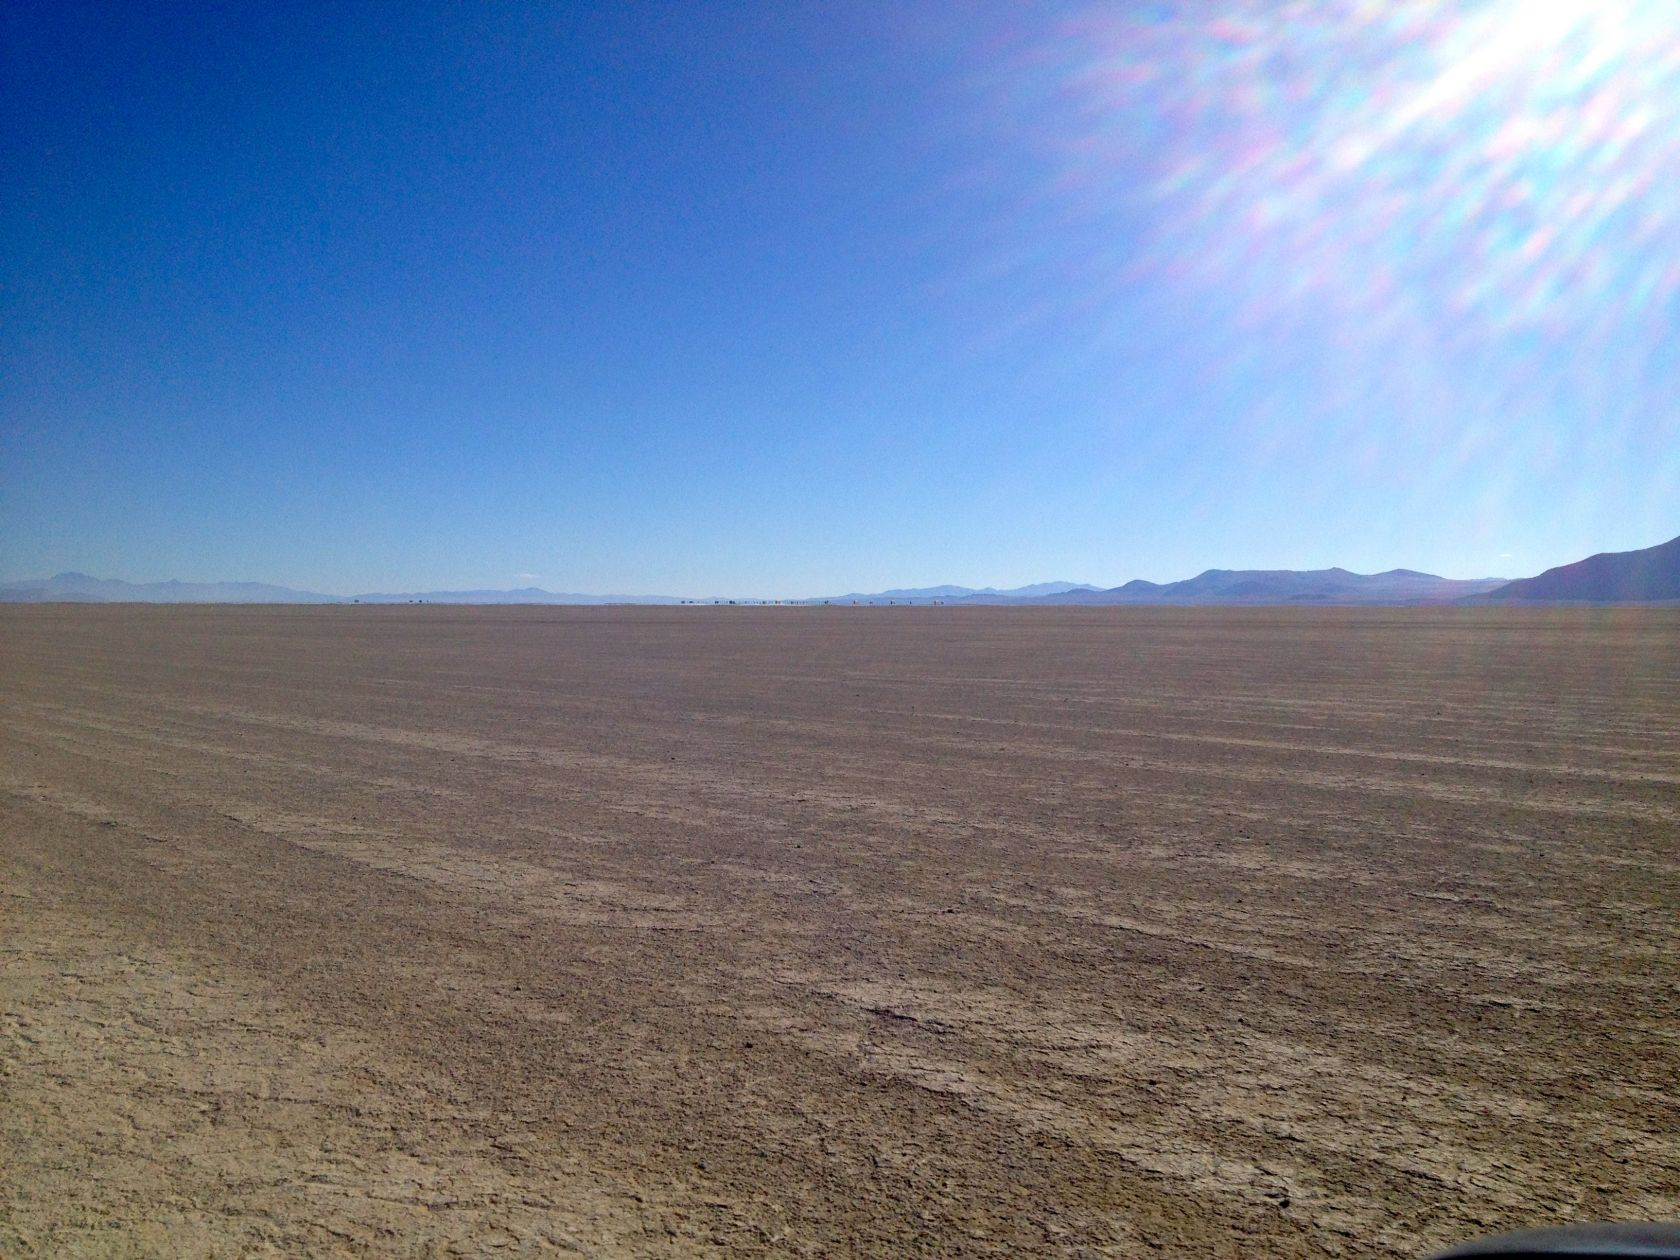 Can you spot the 120-person Line Sweep and fleet vehicles on the distant horizon?